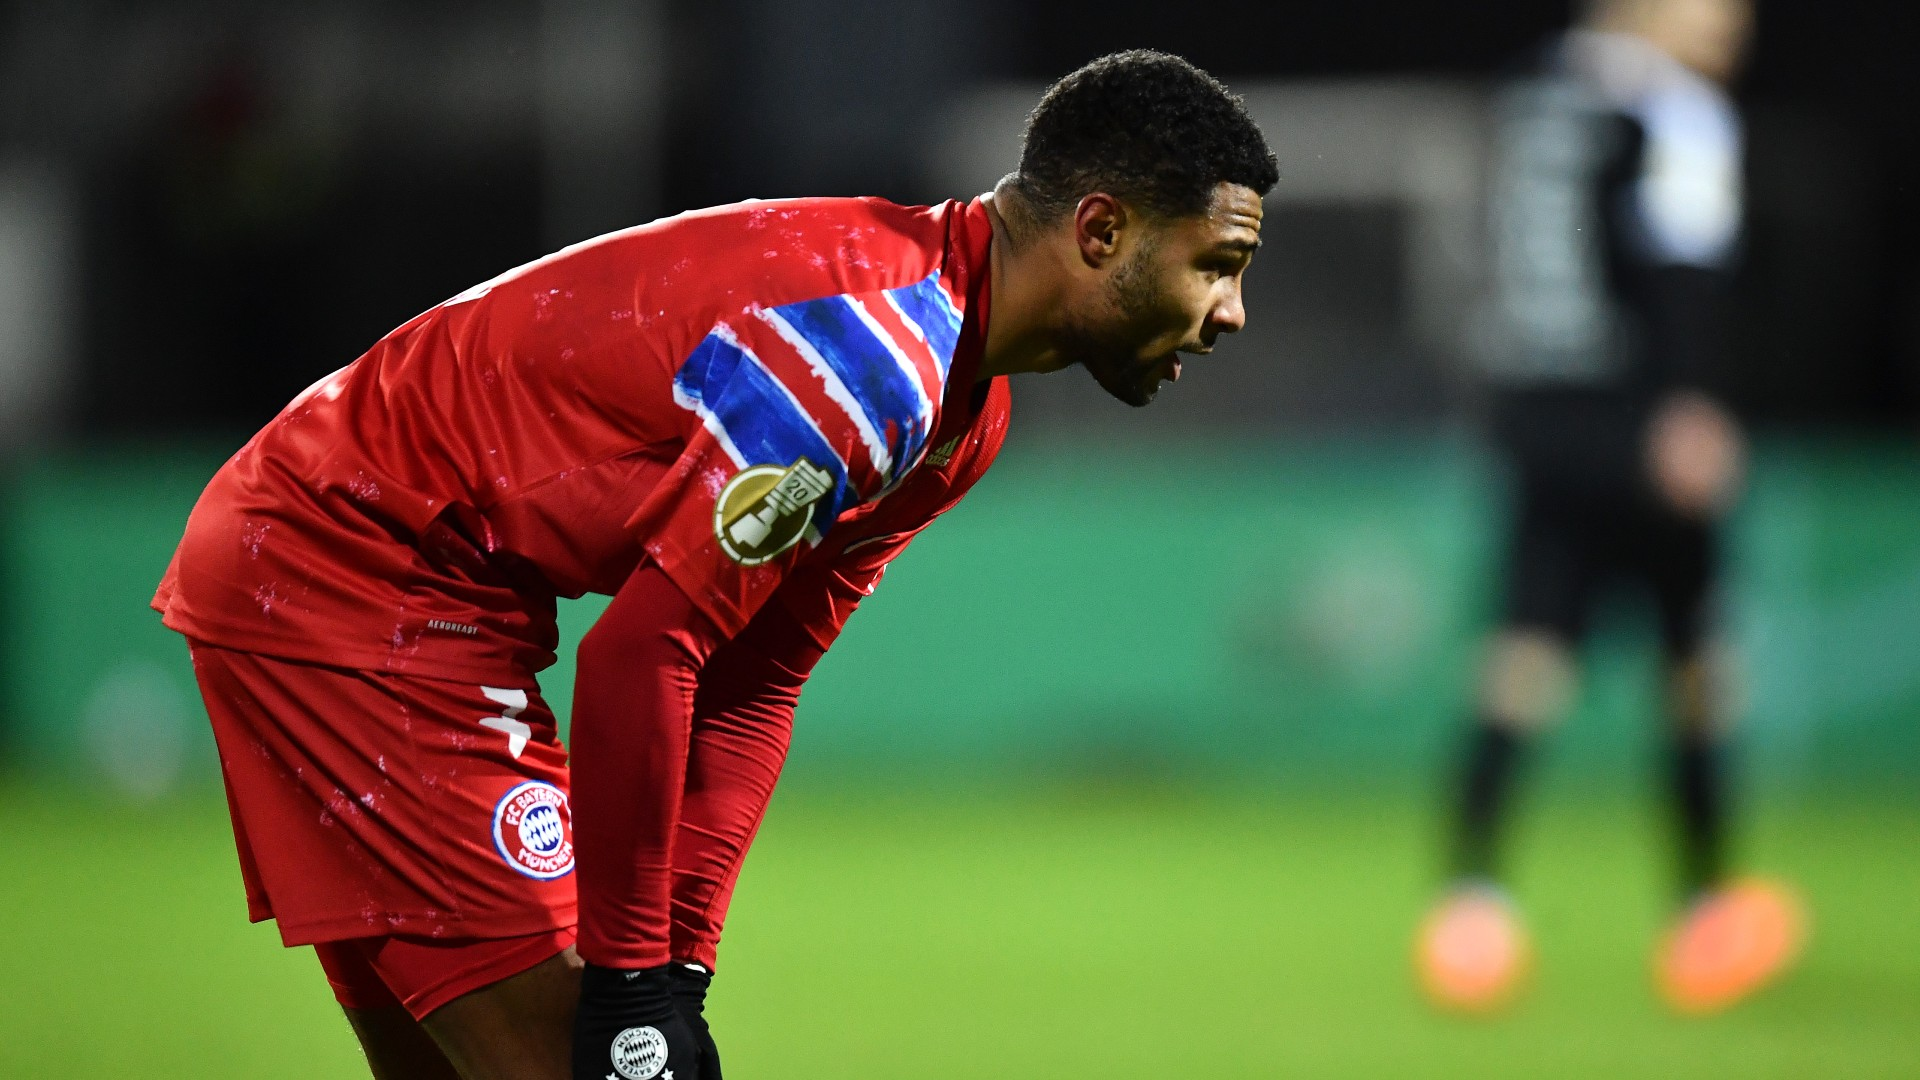 Gnabry angry at 'giving away a title' as Bayern Munich seek to counter DFB-Pokal shock with Club World Cup glory